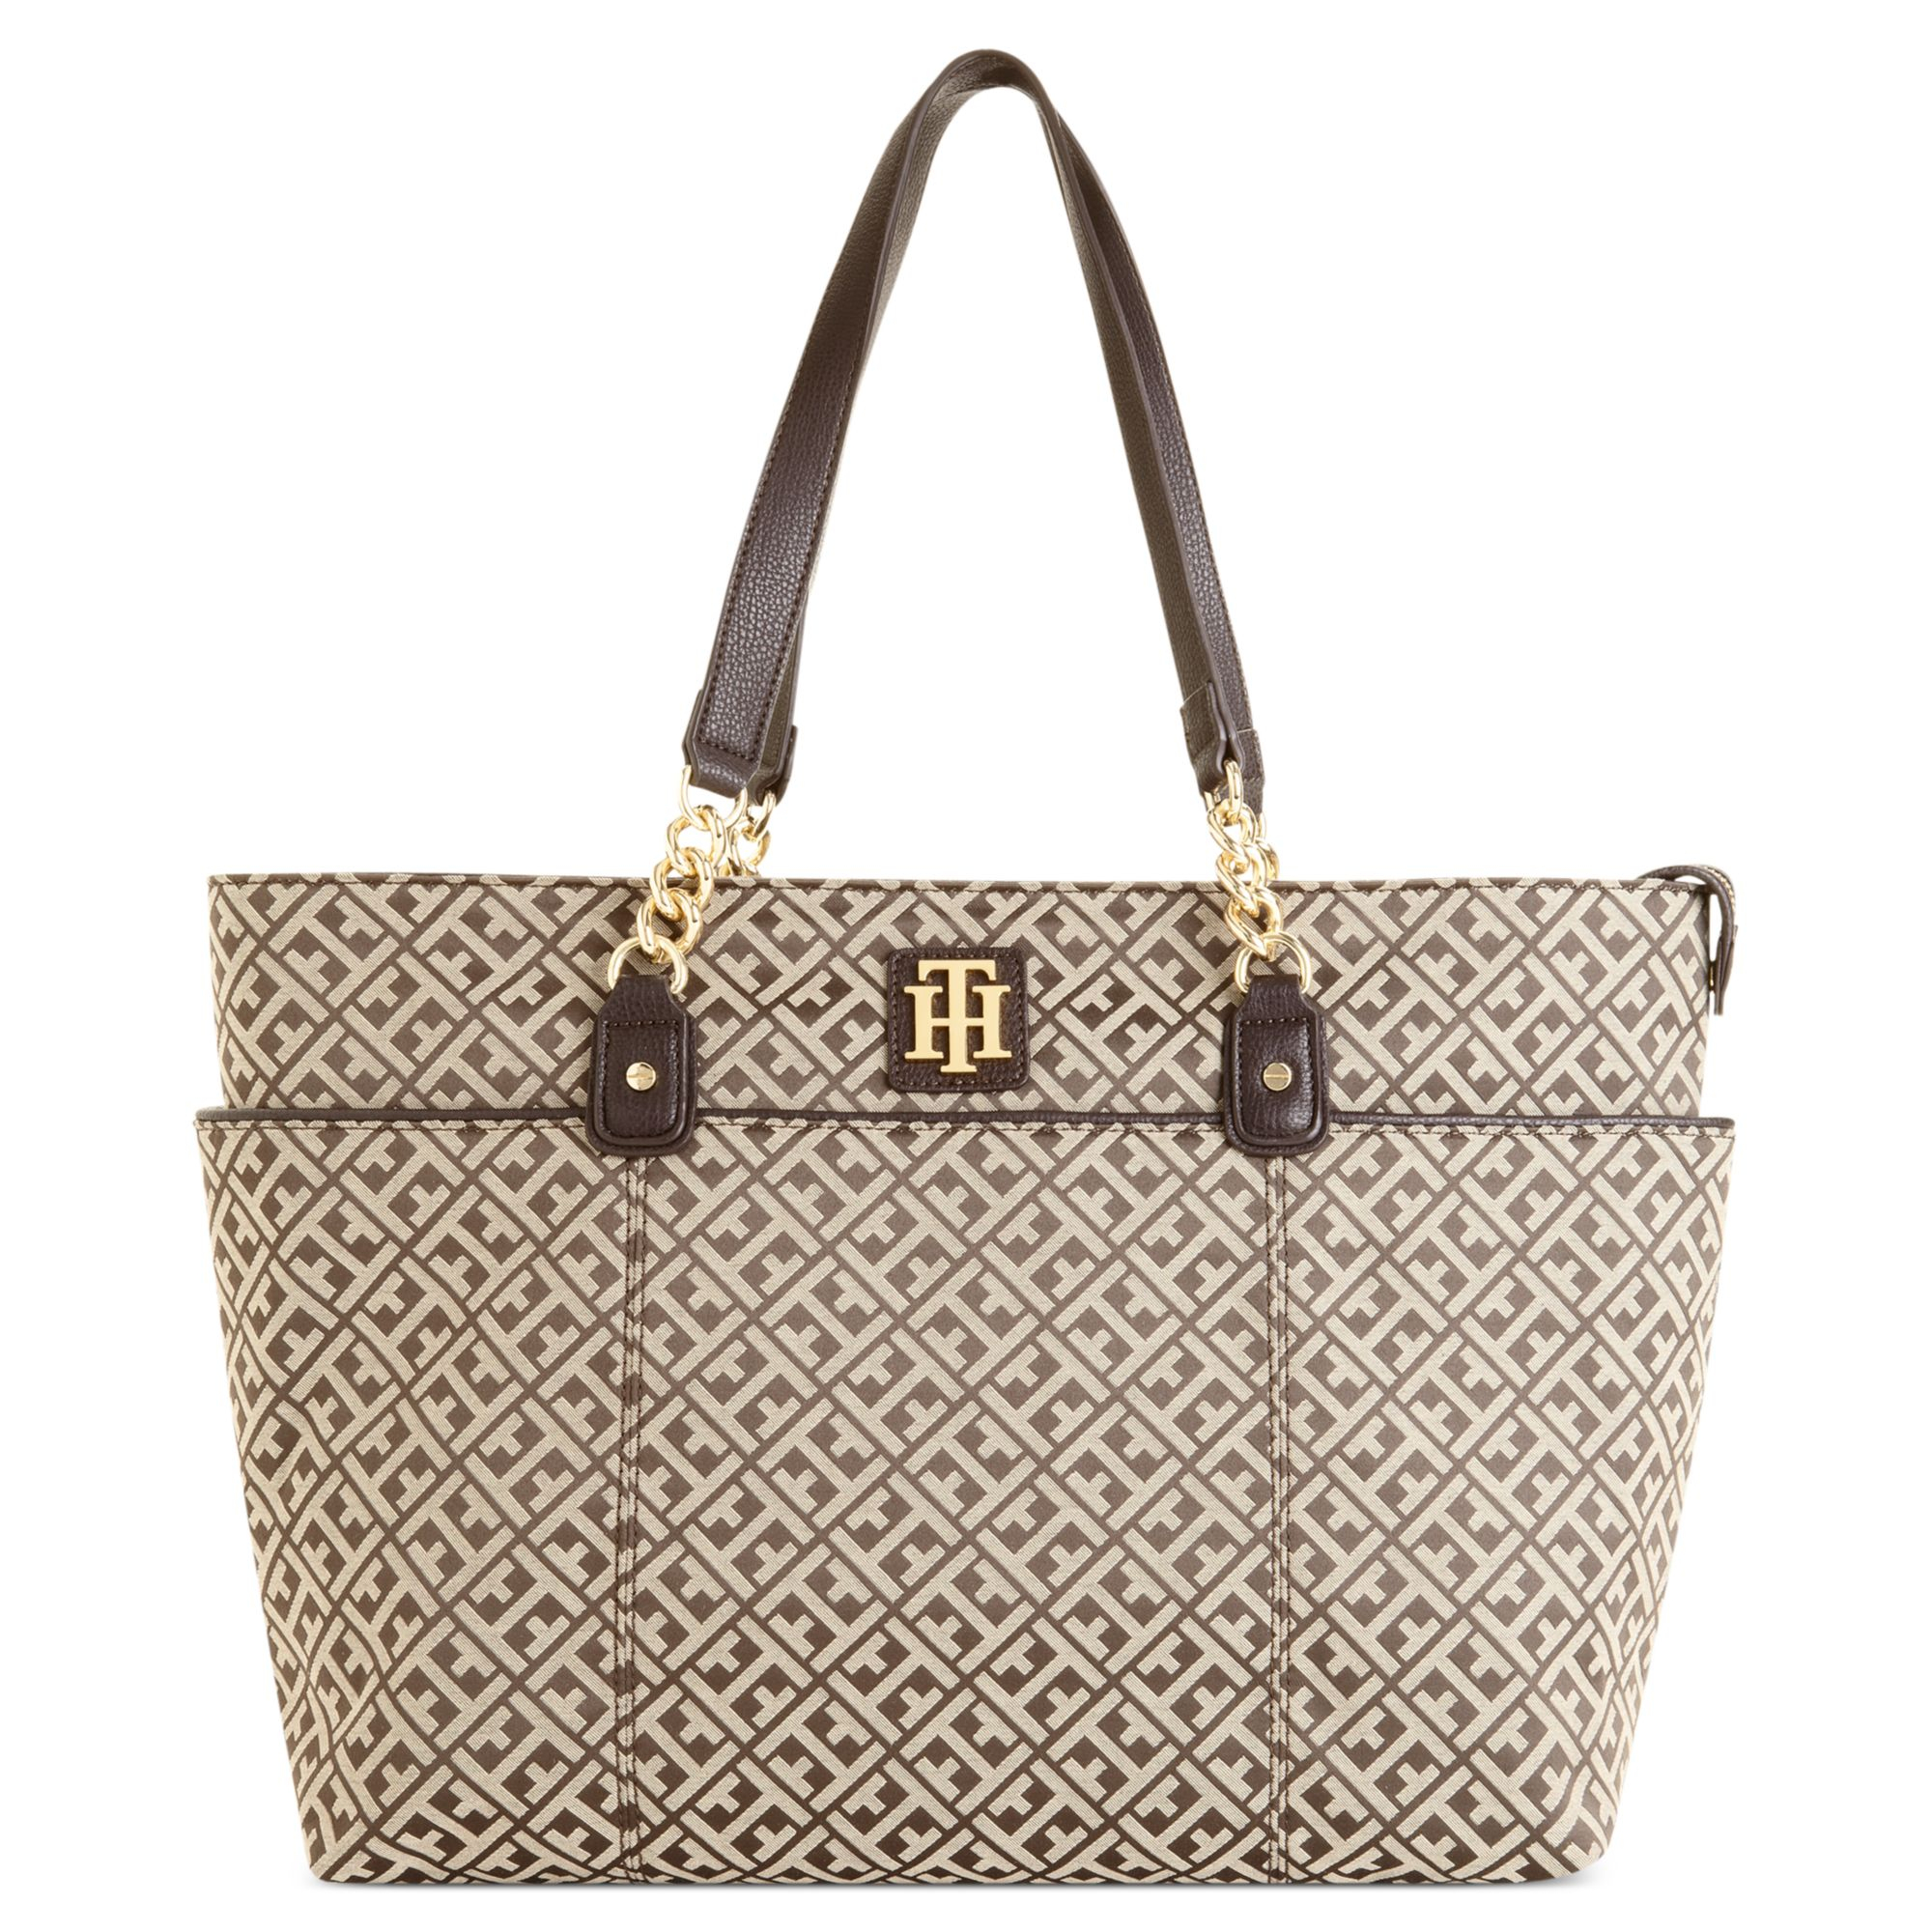 73ee5ce065 Tommy Hilfiger Bombay Signature Jaquard Tote in Brown - Lyst